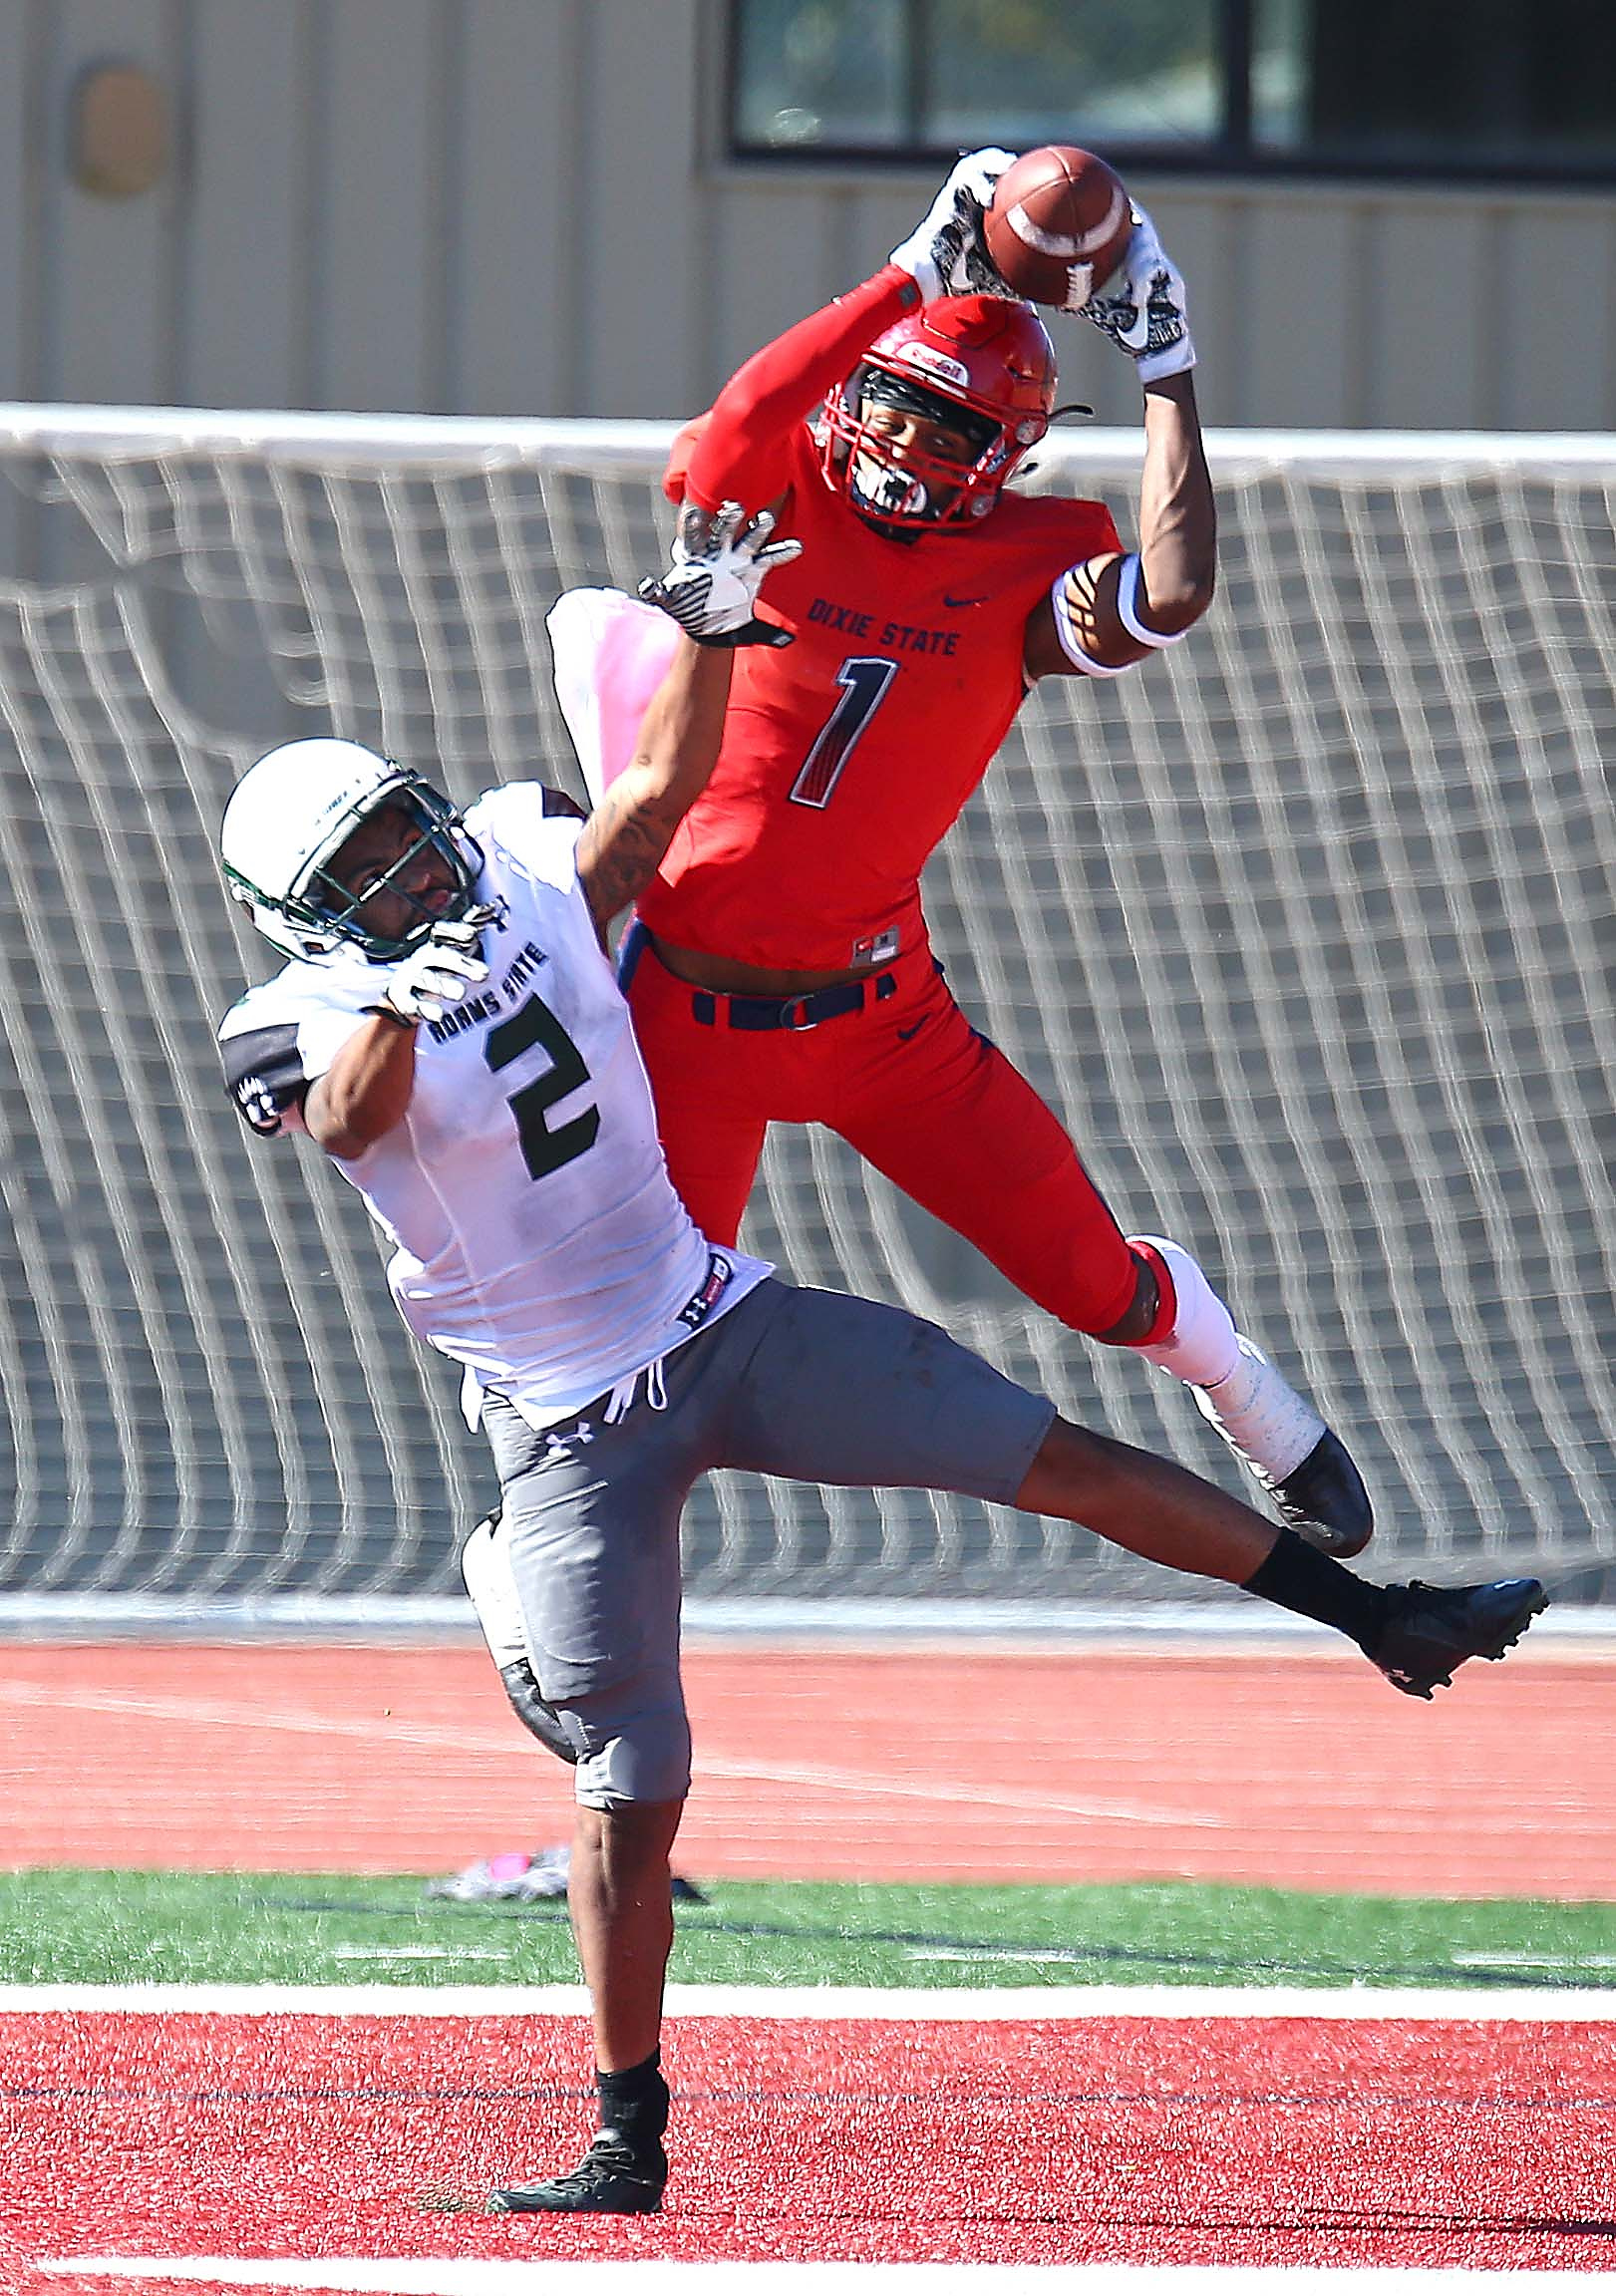 Dixie State Outguns Adams State For 4th Win Of Year St George News